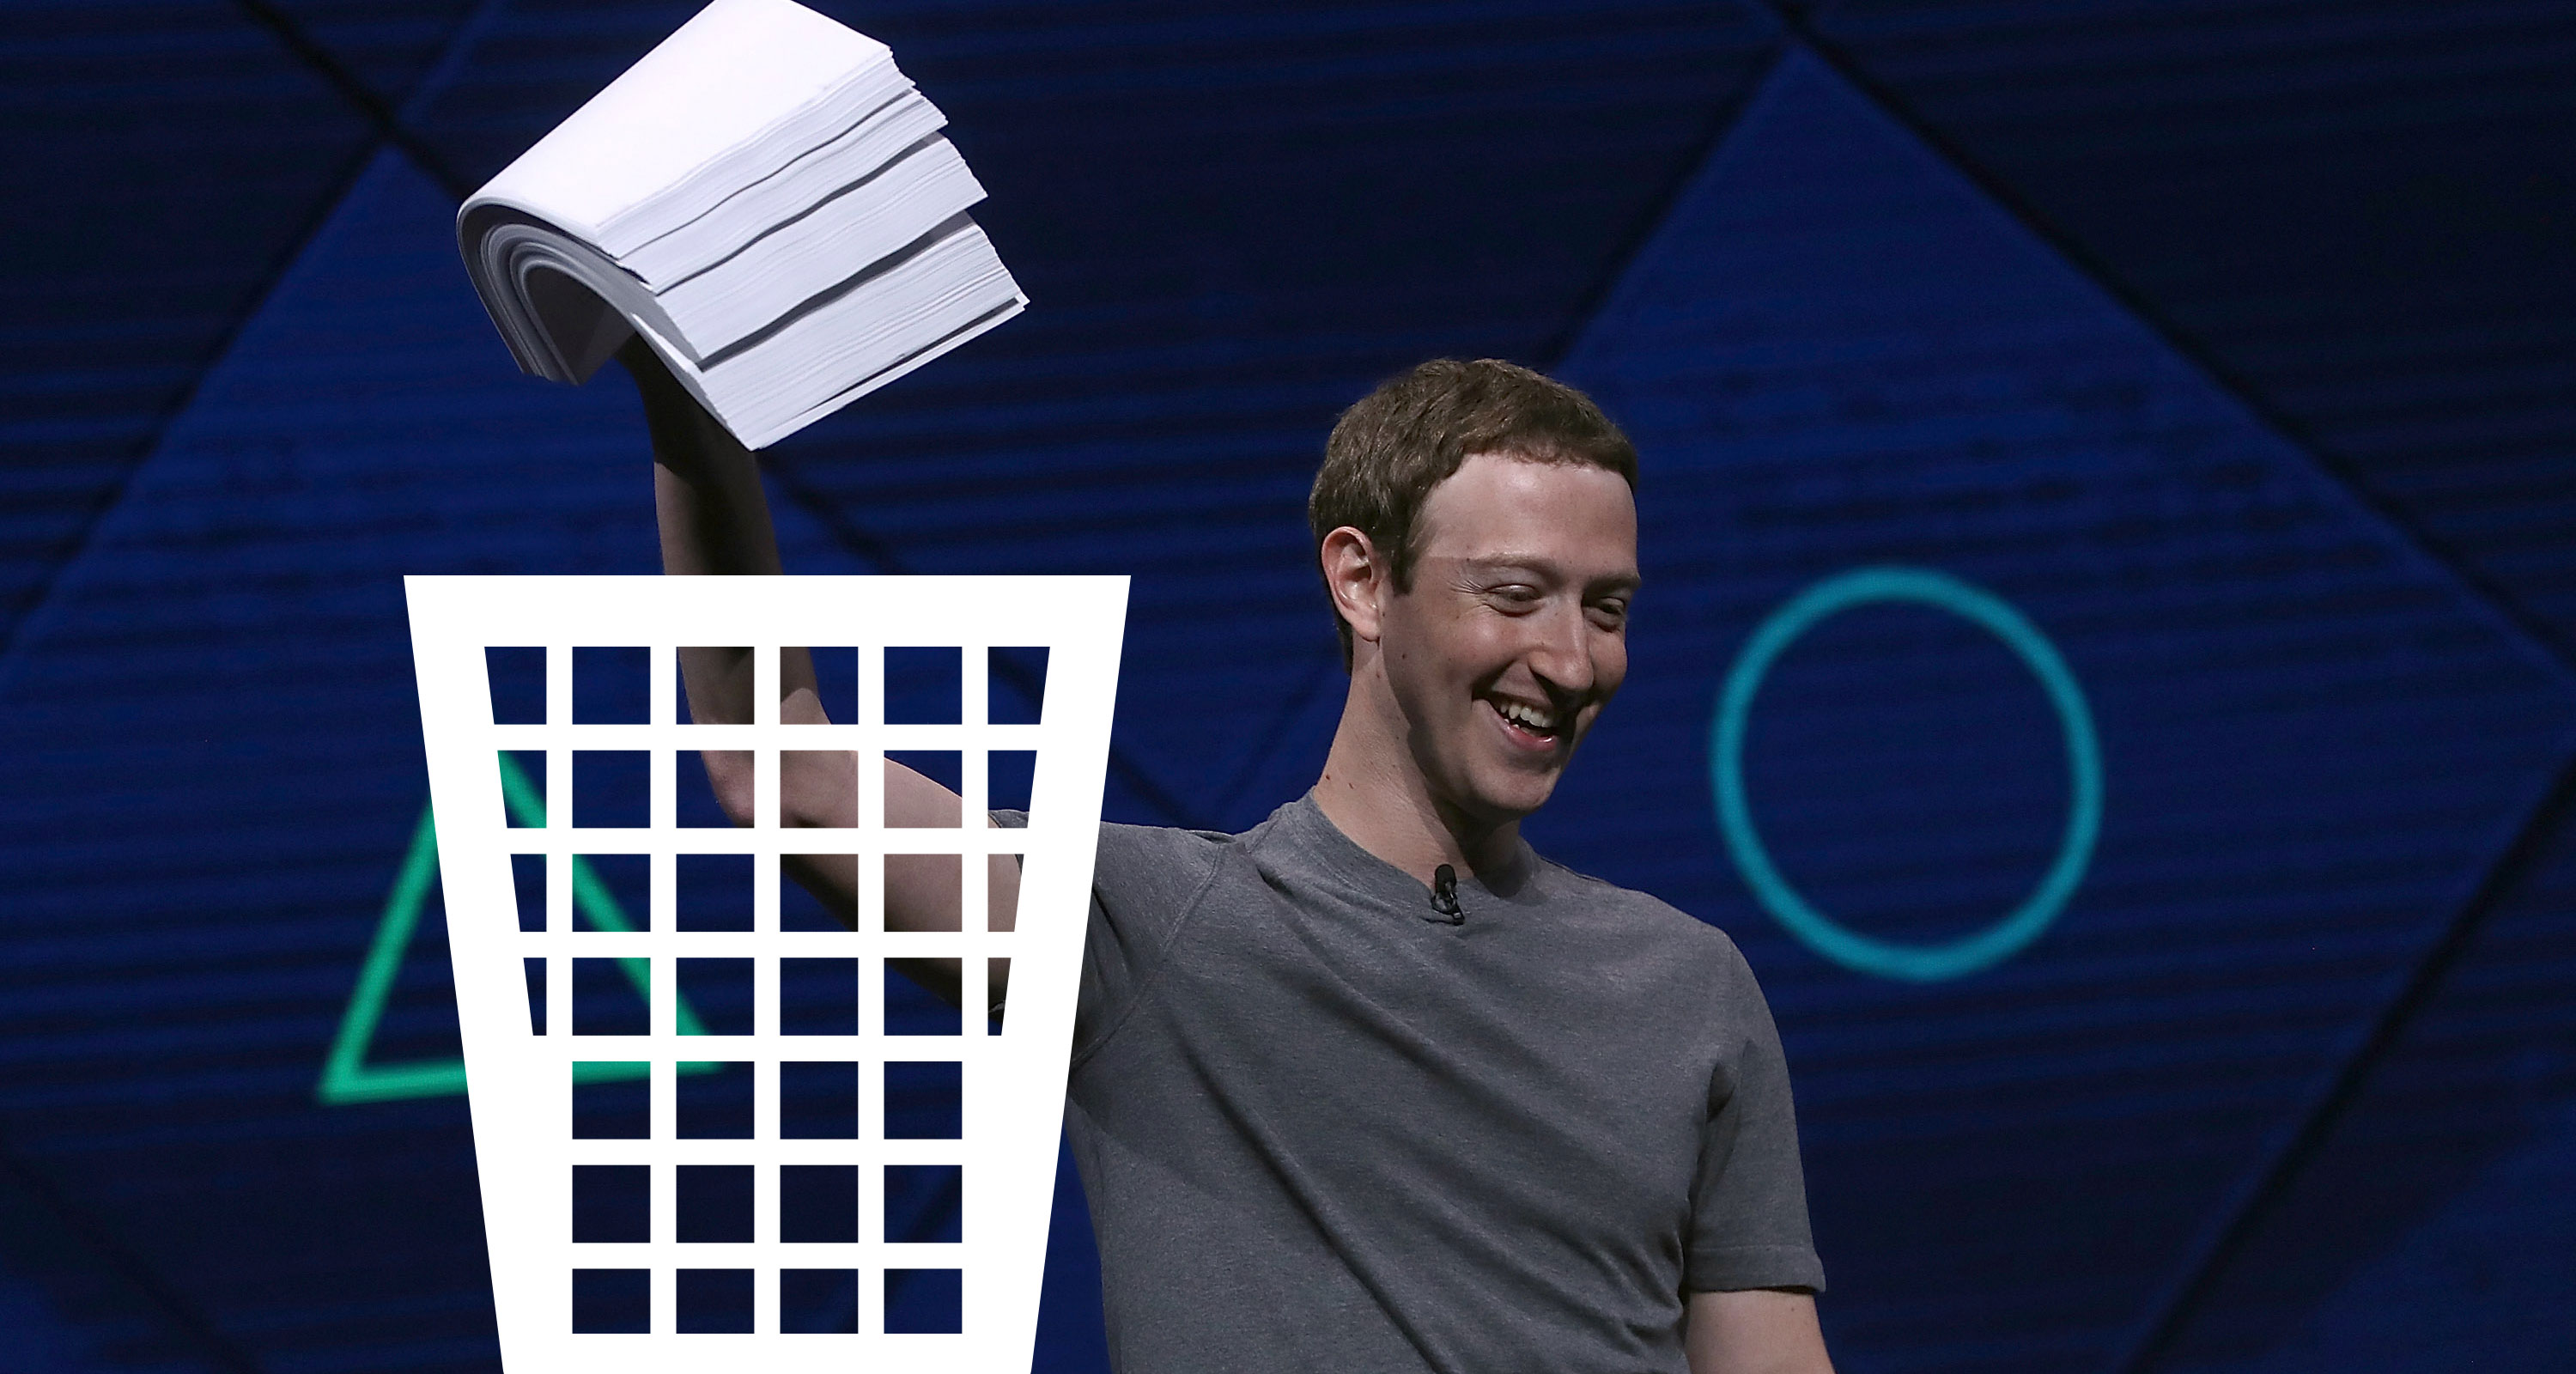 Facebook will require more authentication for people buying political ads